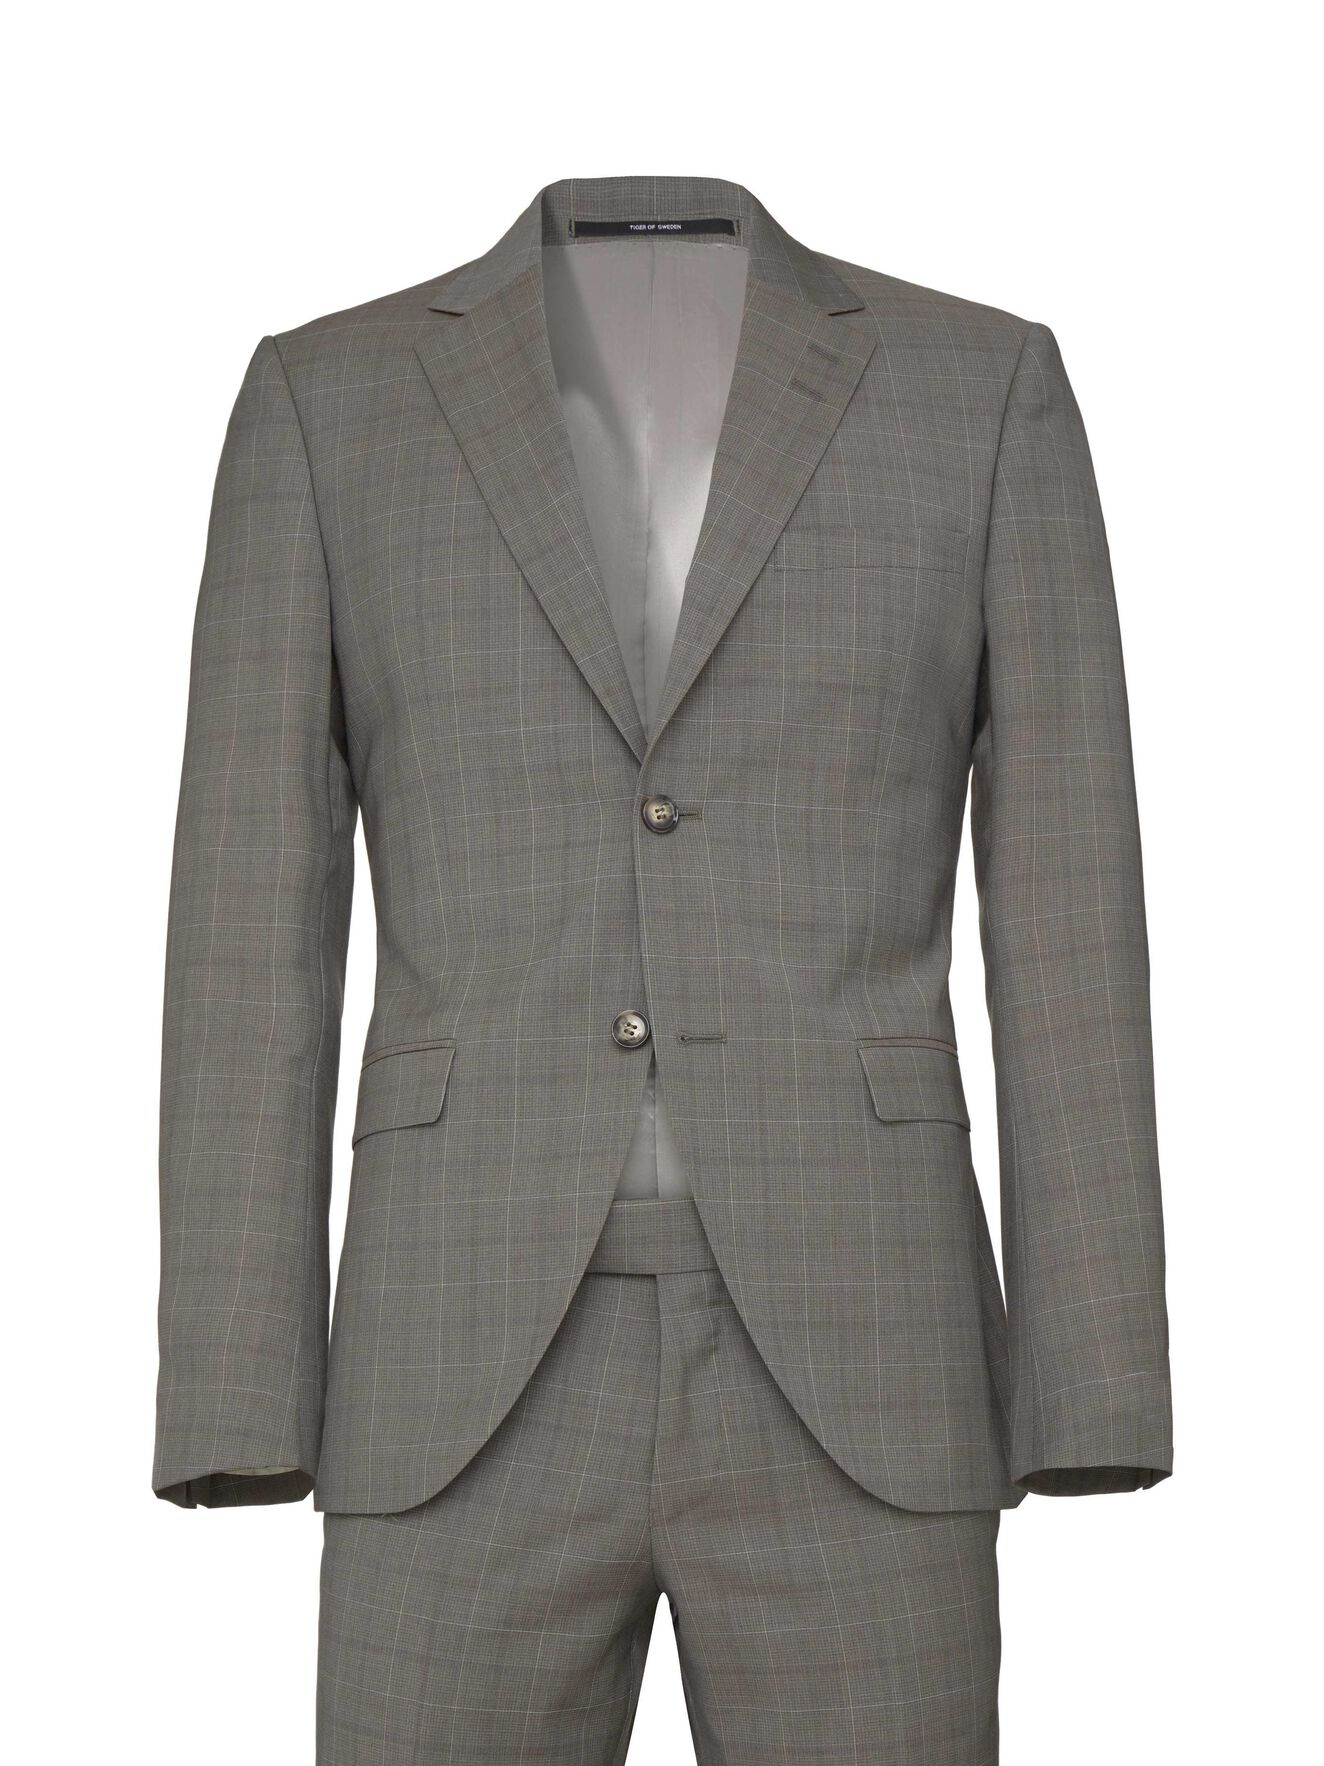 Lamonte Suit in Tiger Eye from Tiger of Sweden